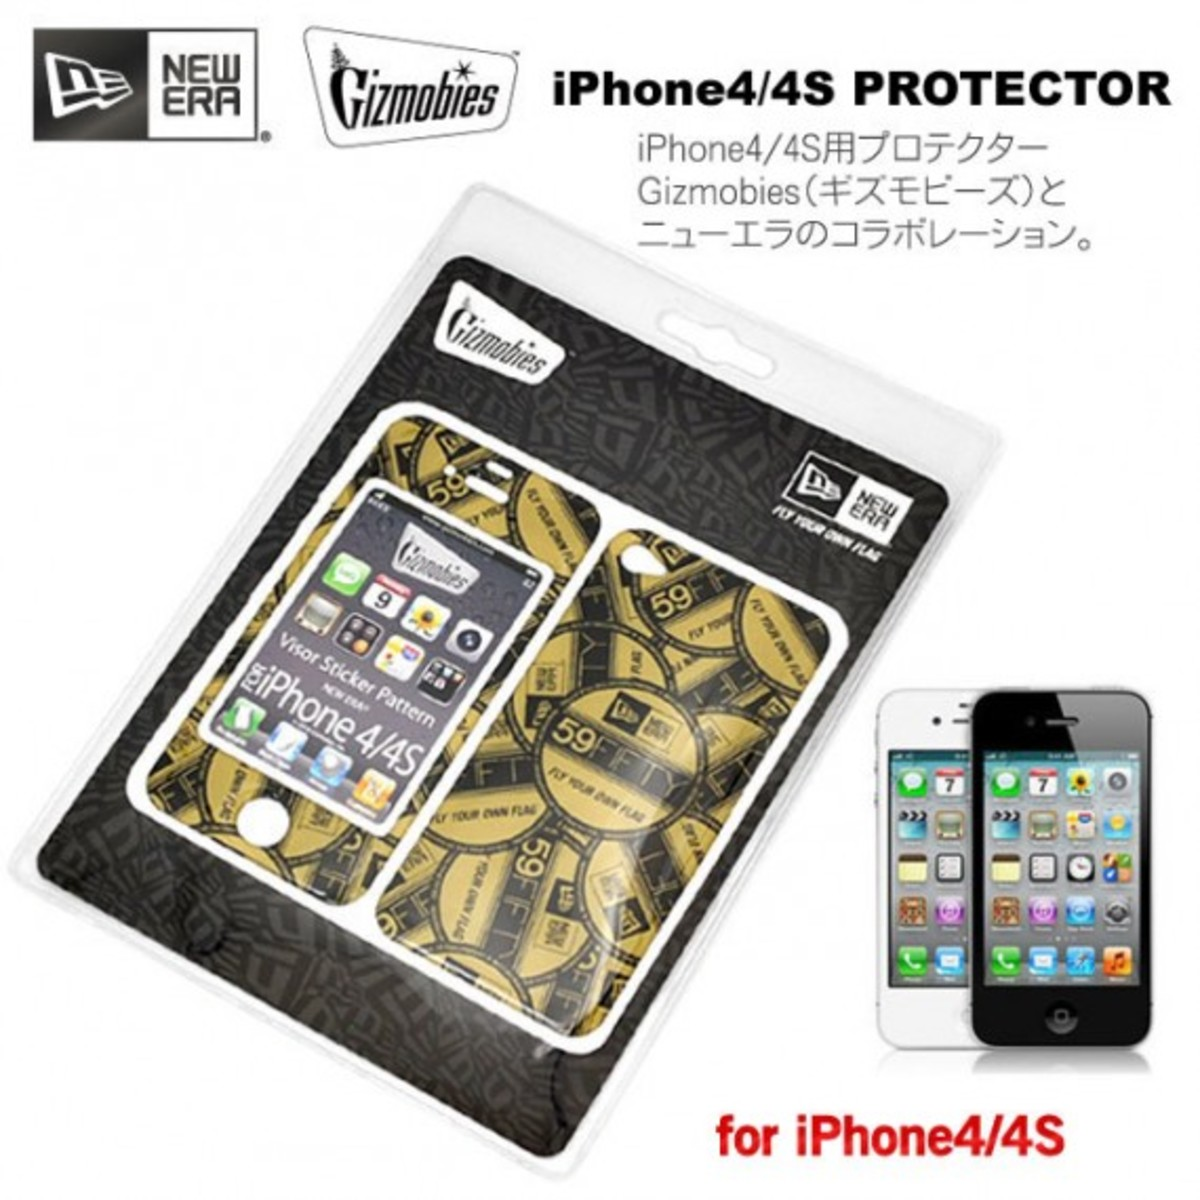 new-era-gizmobies-iphone-protective-cover-06